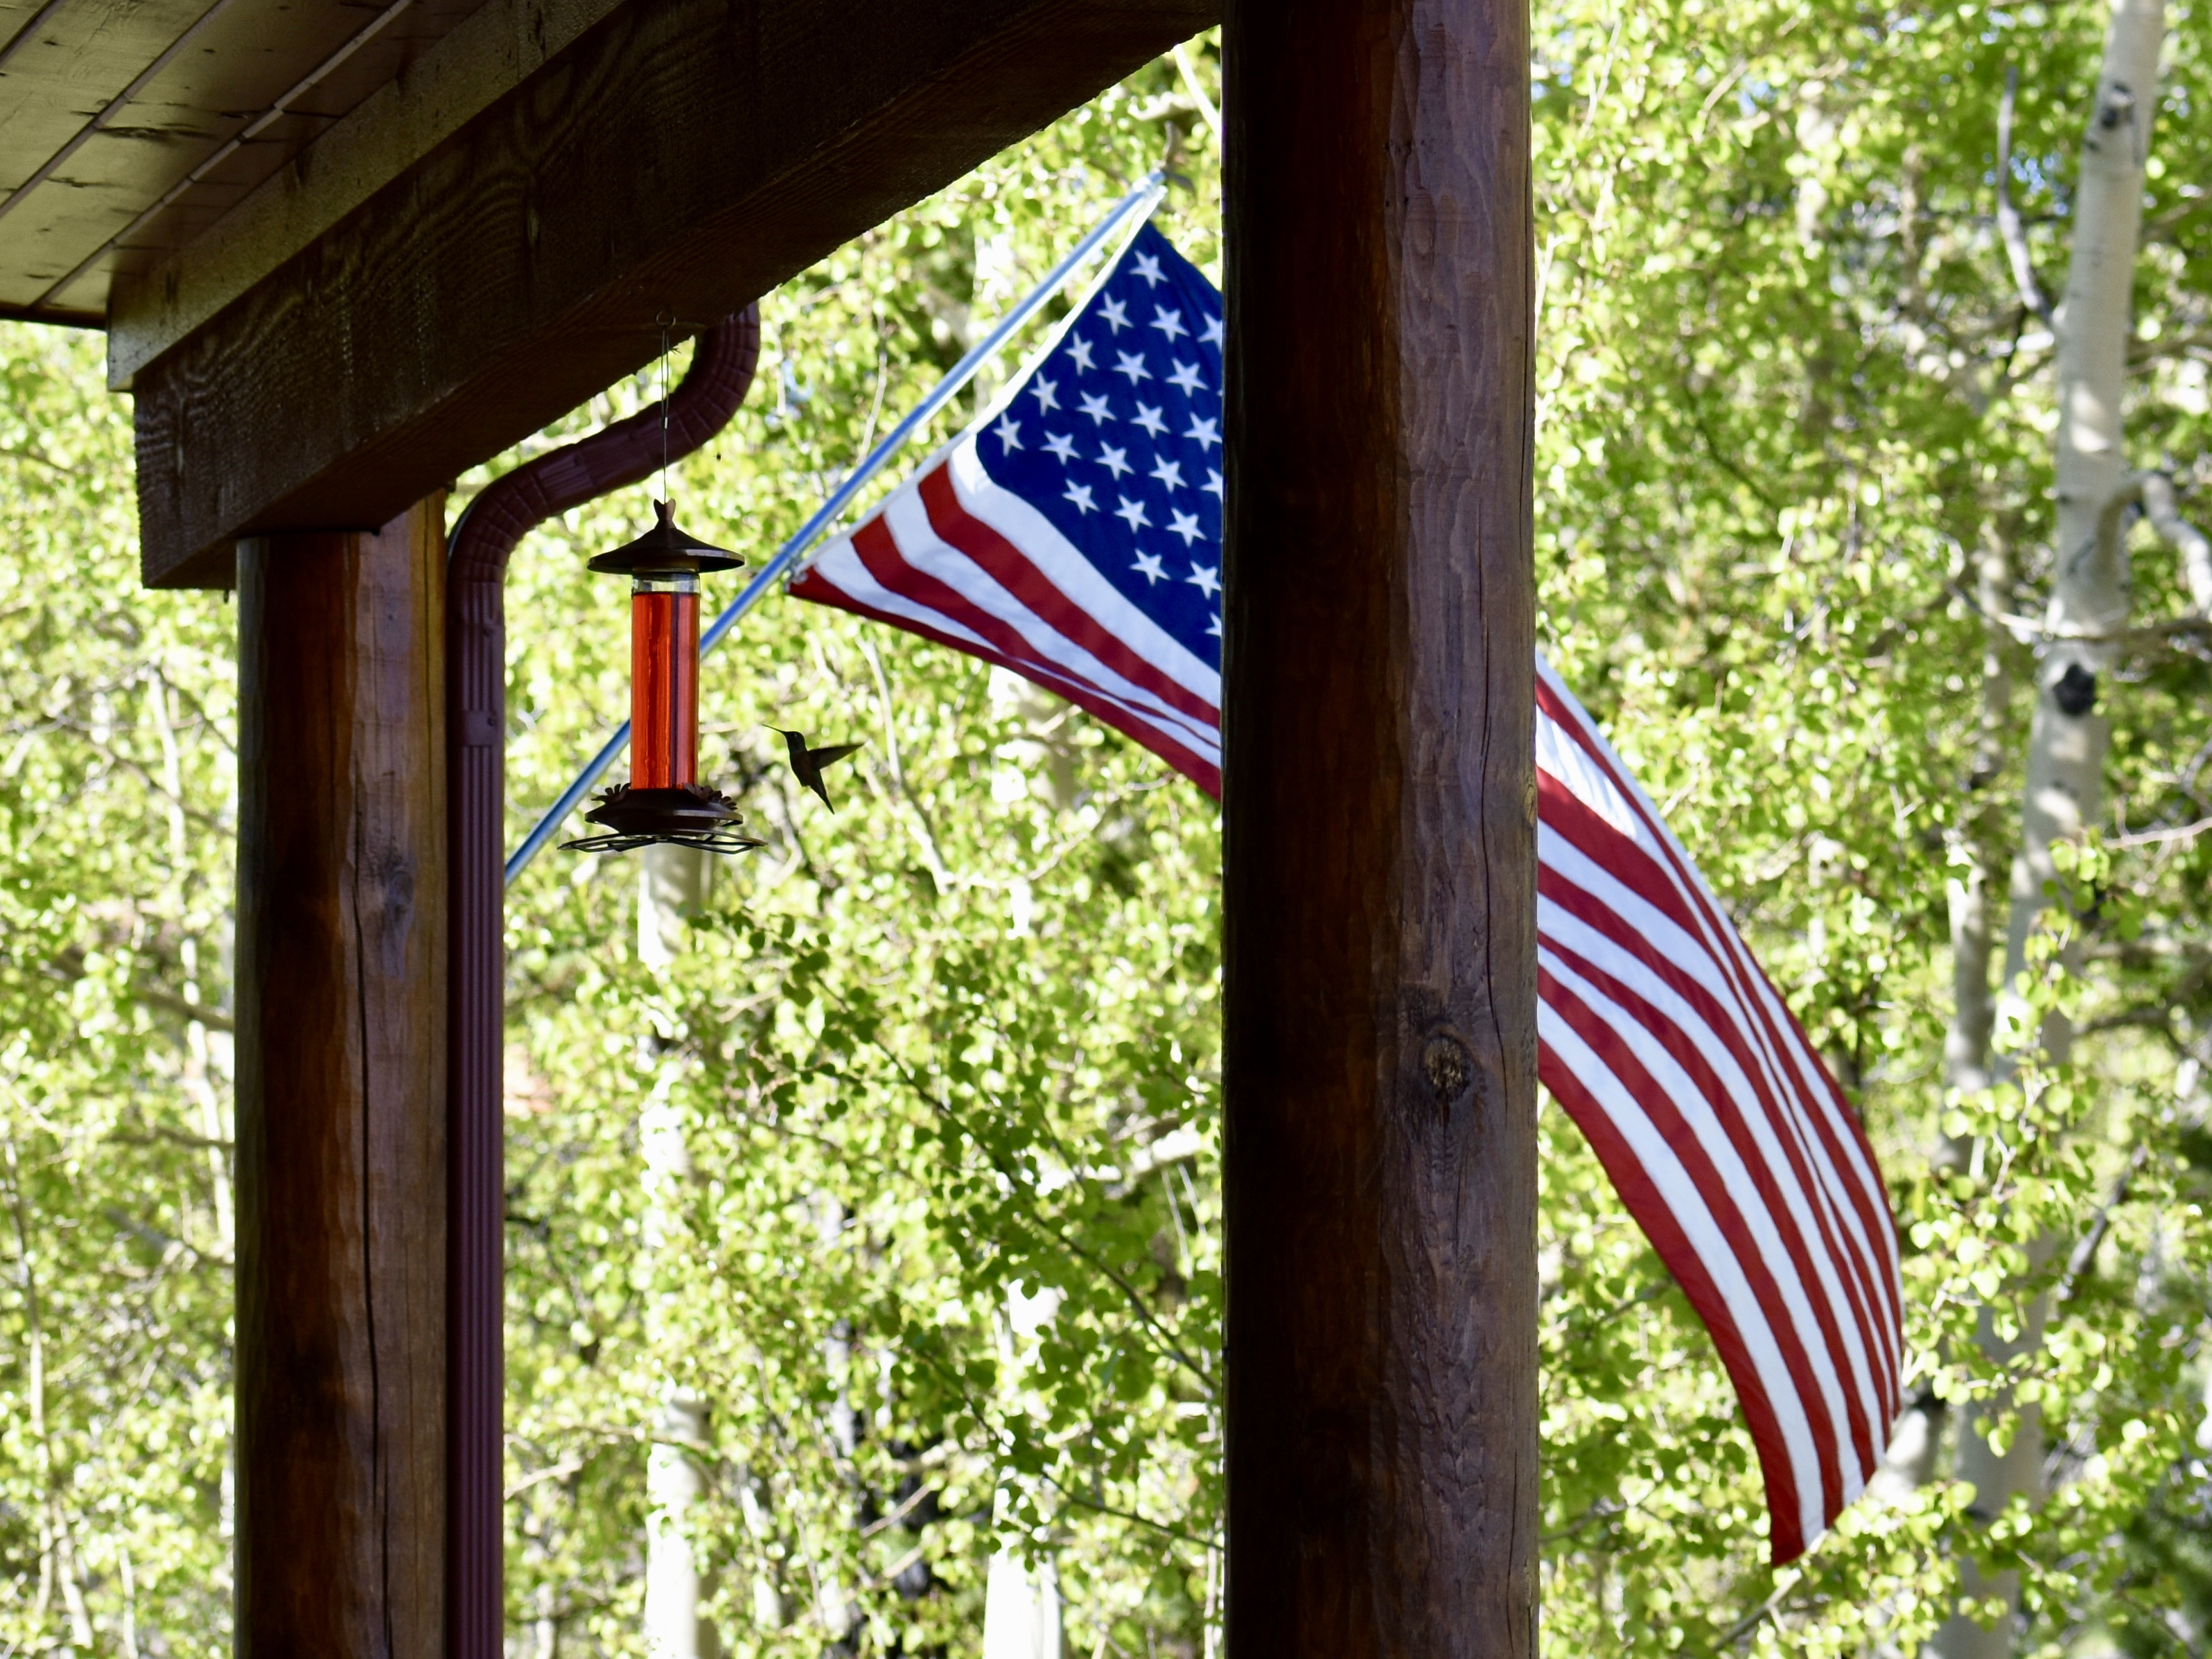 Memorial Day, Andy Rooney, the Thankful Foreigner, and Blowin' in the Wind